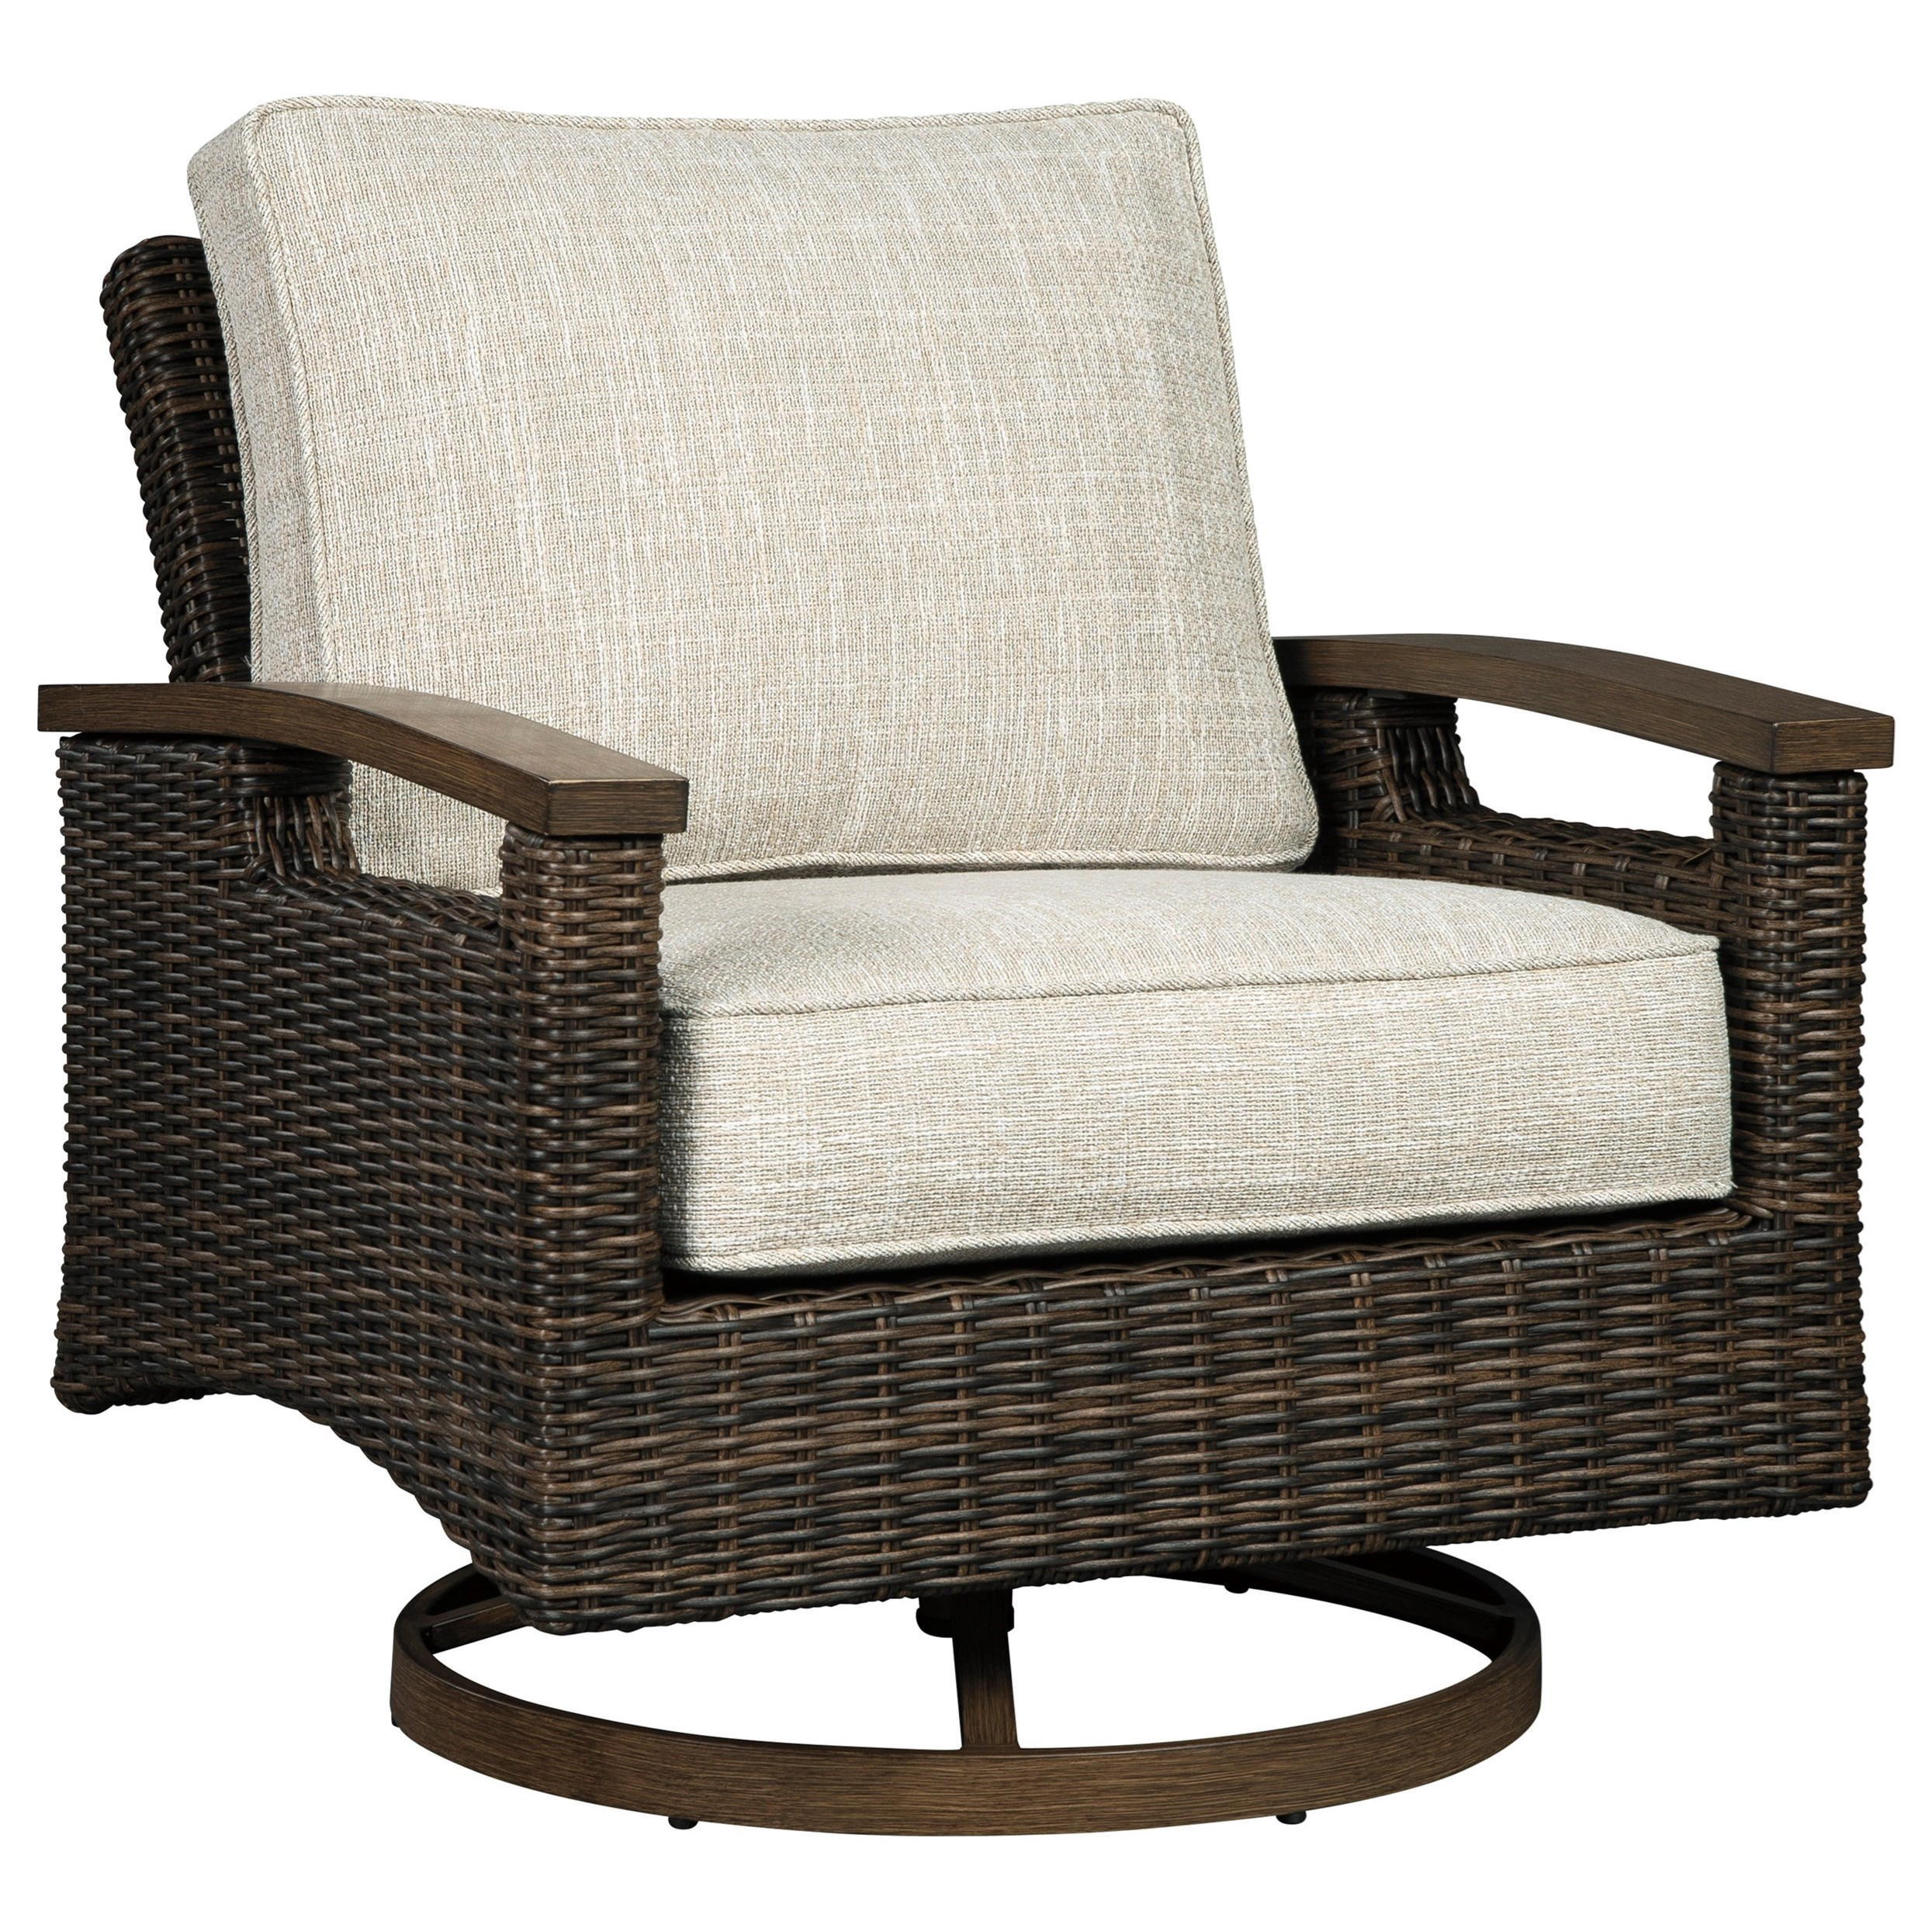 Wicker Swivel Chair Paradise Trail Set Of 2 Resin Wicker Swivel Lounge Chairs By Signature Design By Ashley At Olinde S Furniture